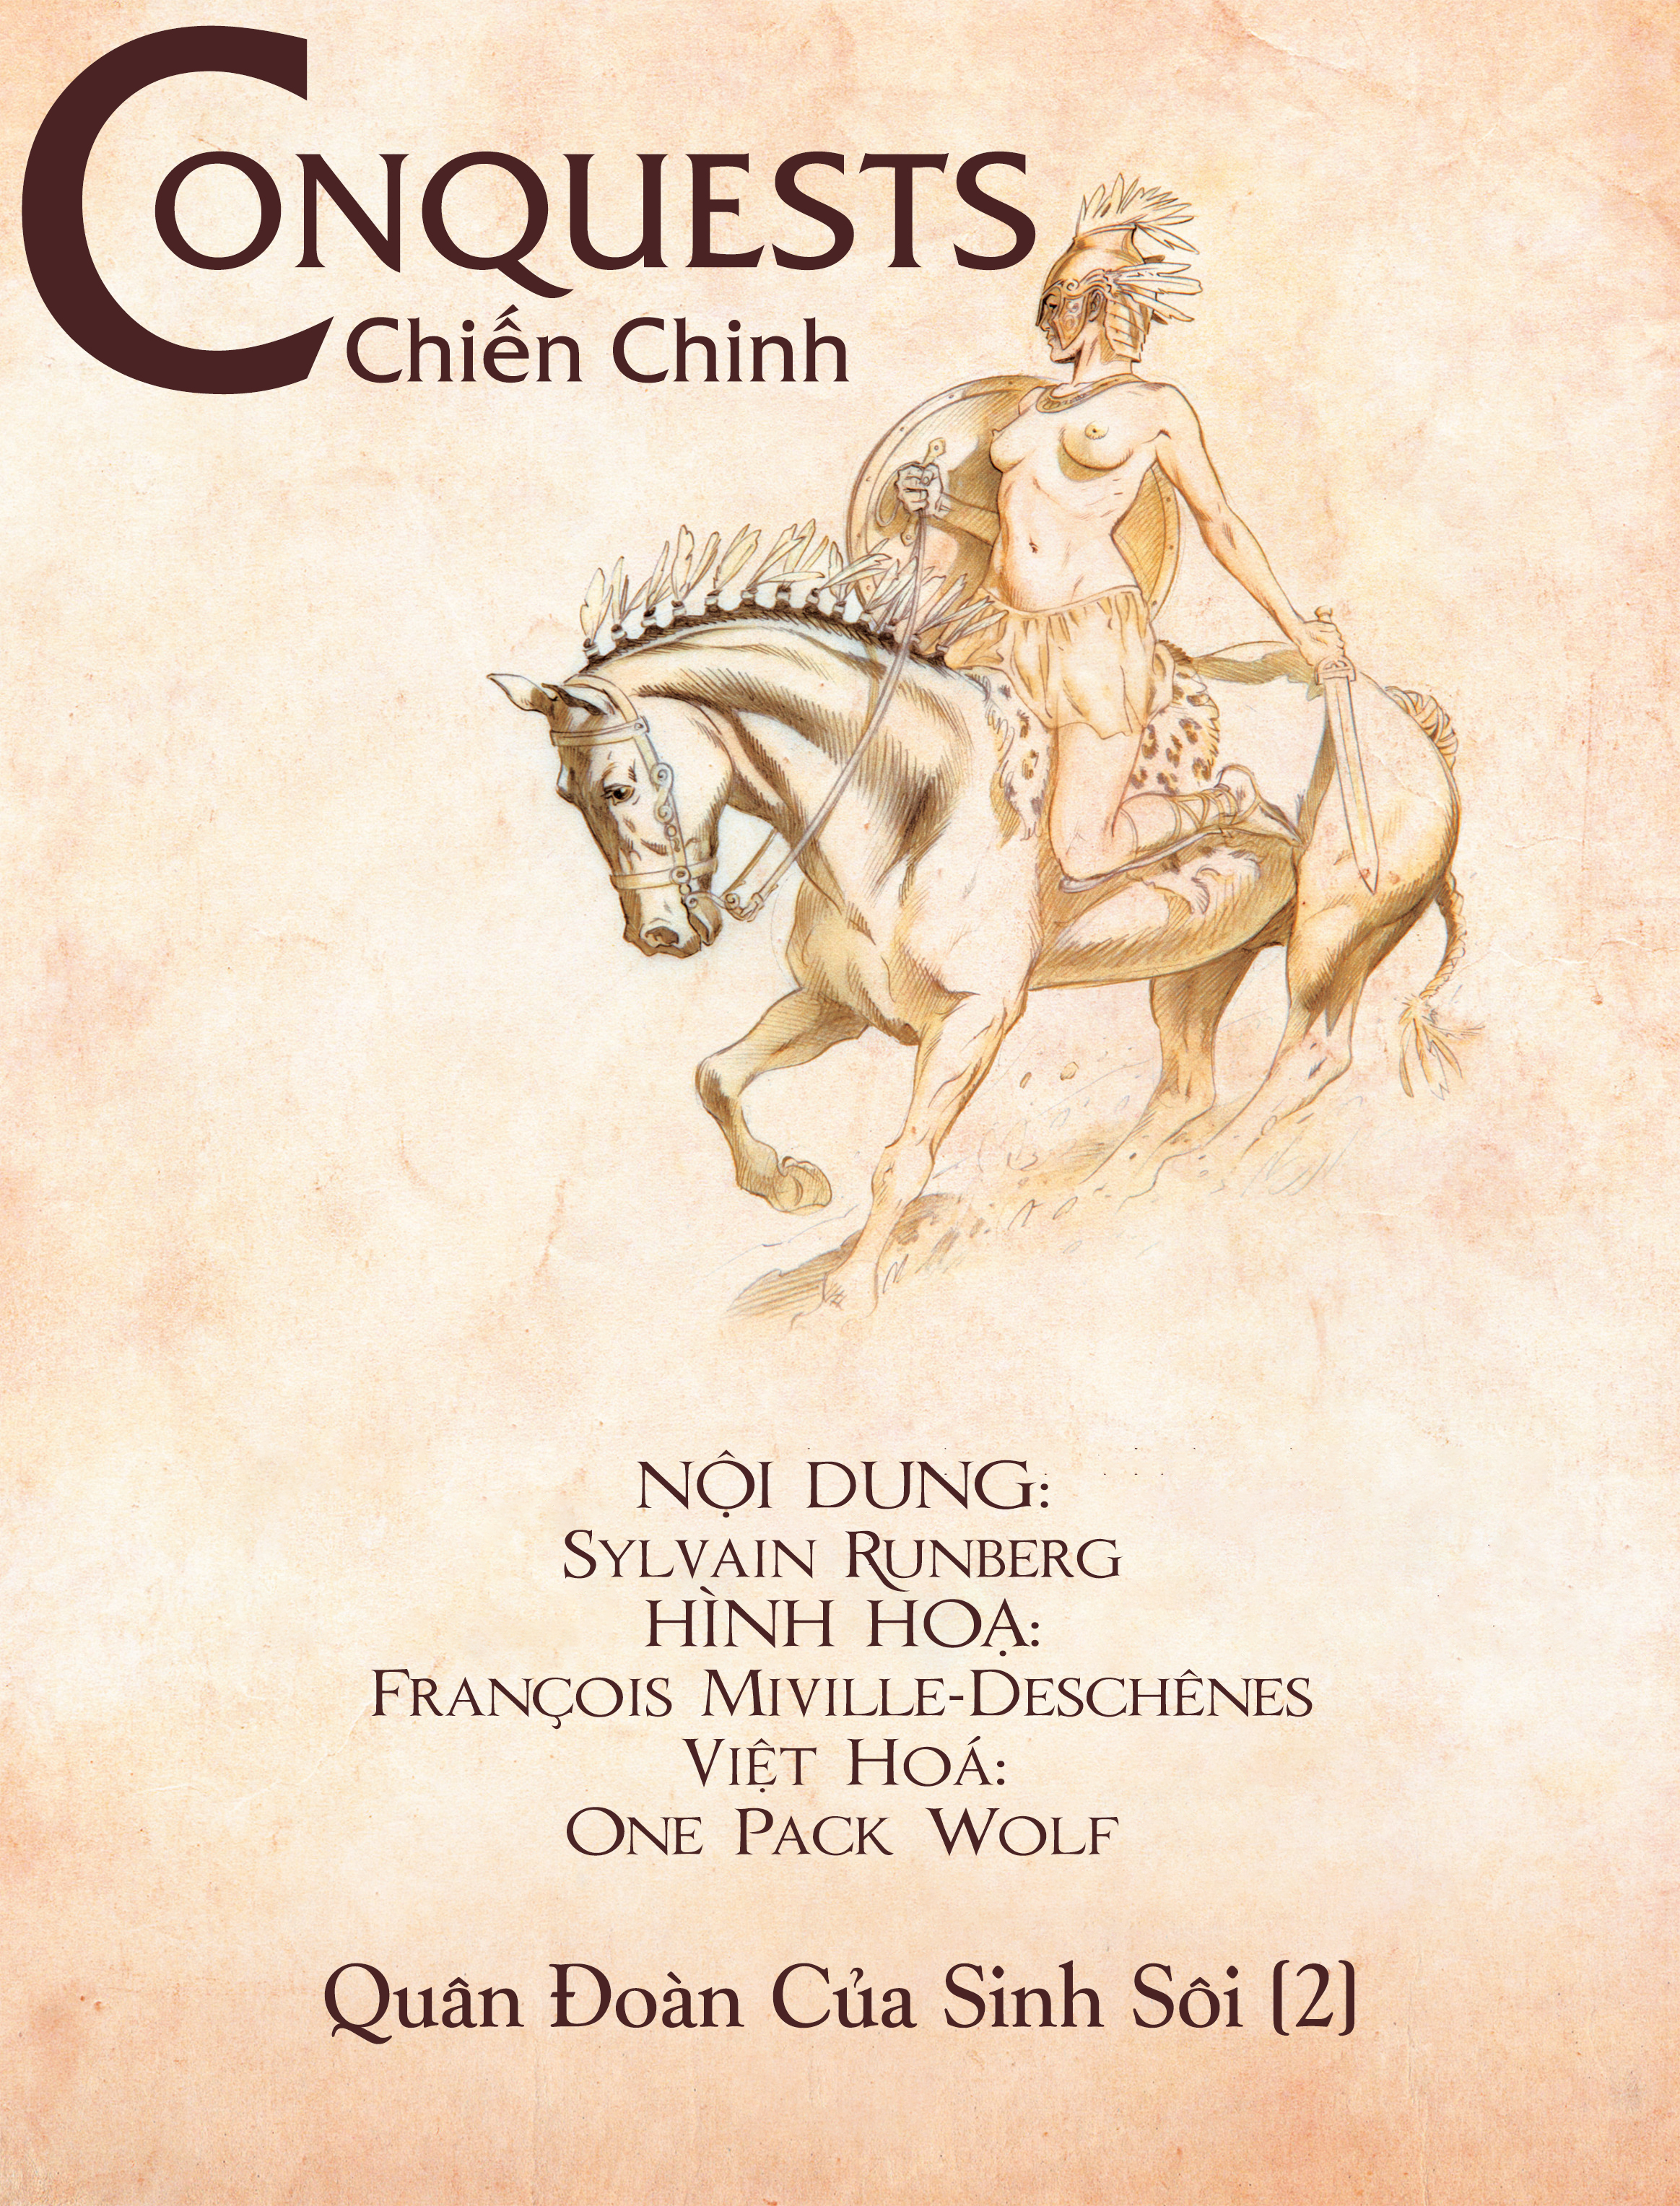 Conquests - Chiến Chinh